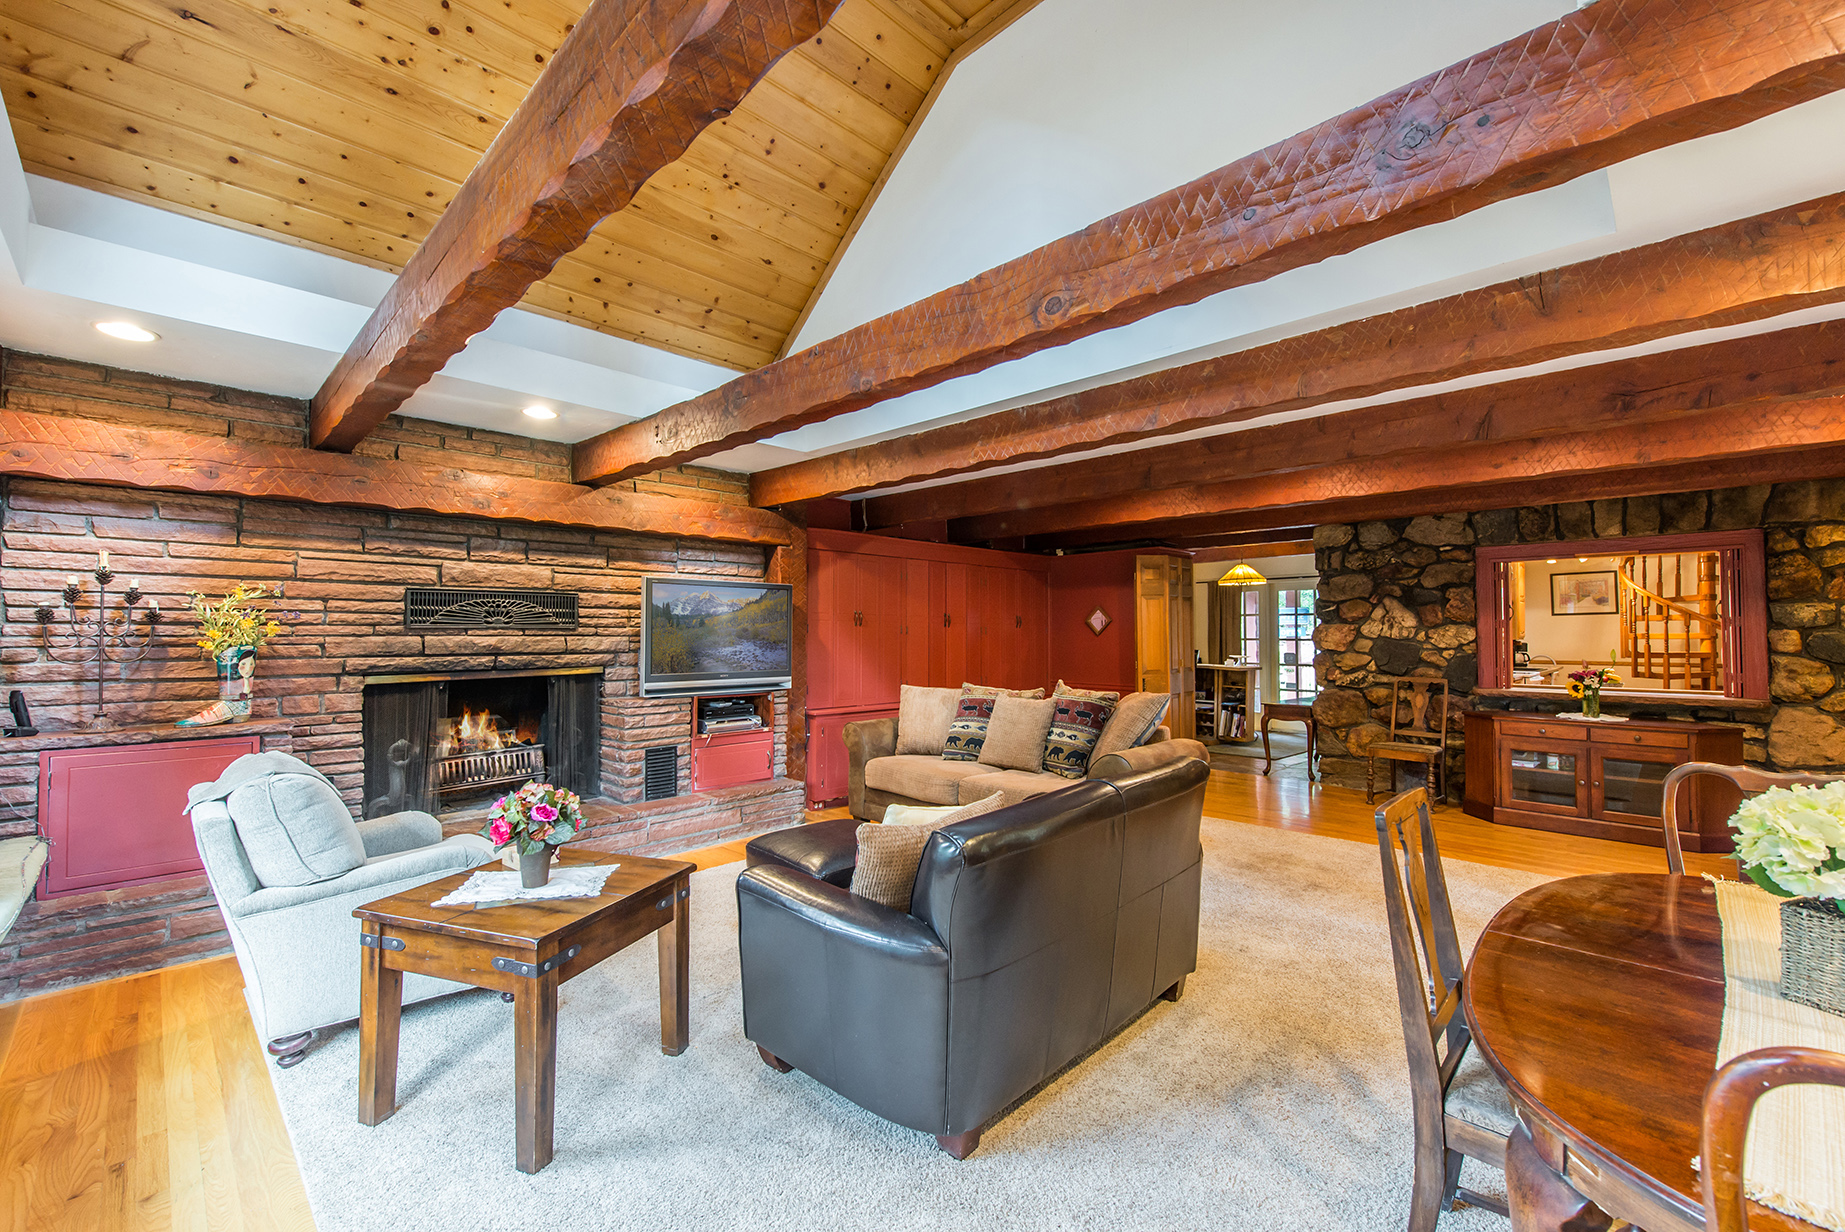 The Alpen Way Chalet Inn, located at 4980 Highway 73 in Evergreen, CO. Listed LIV Sotheby's International Realty for $1,199,000.